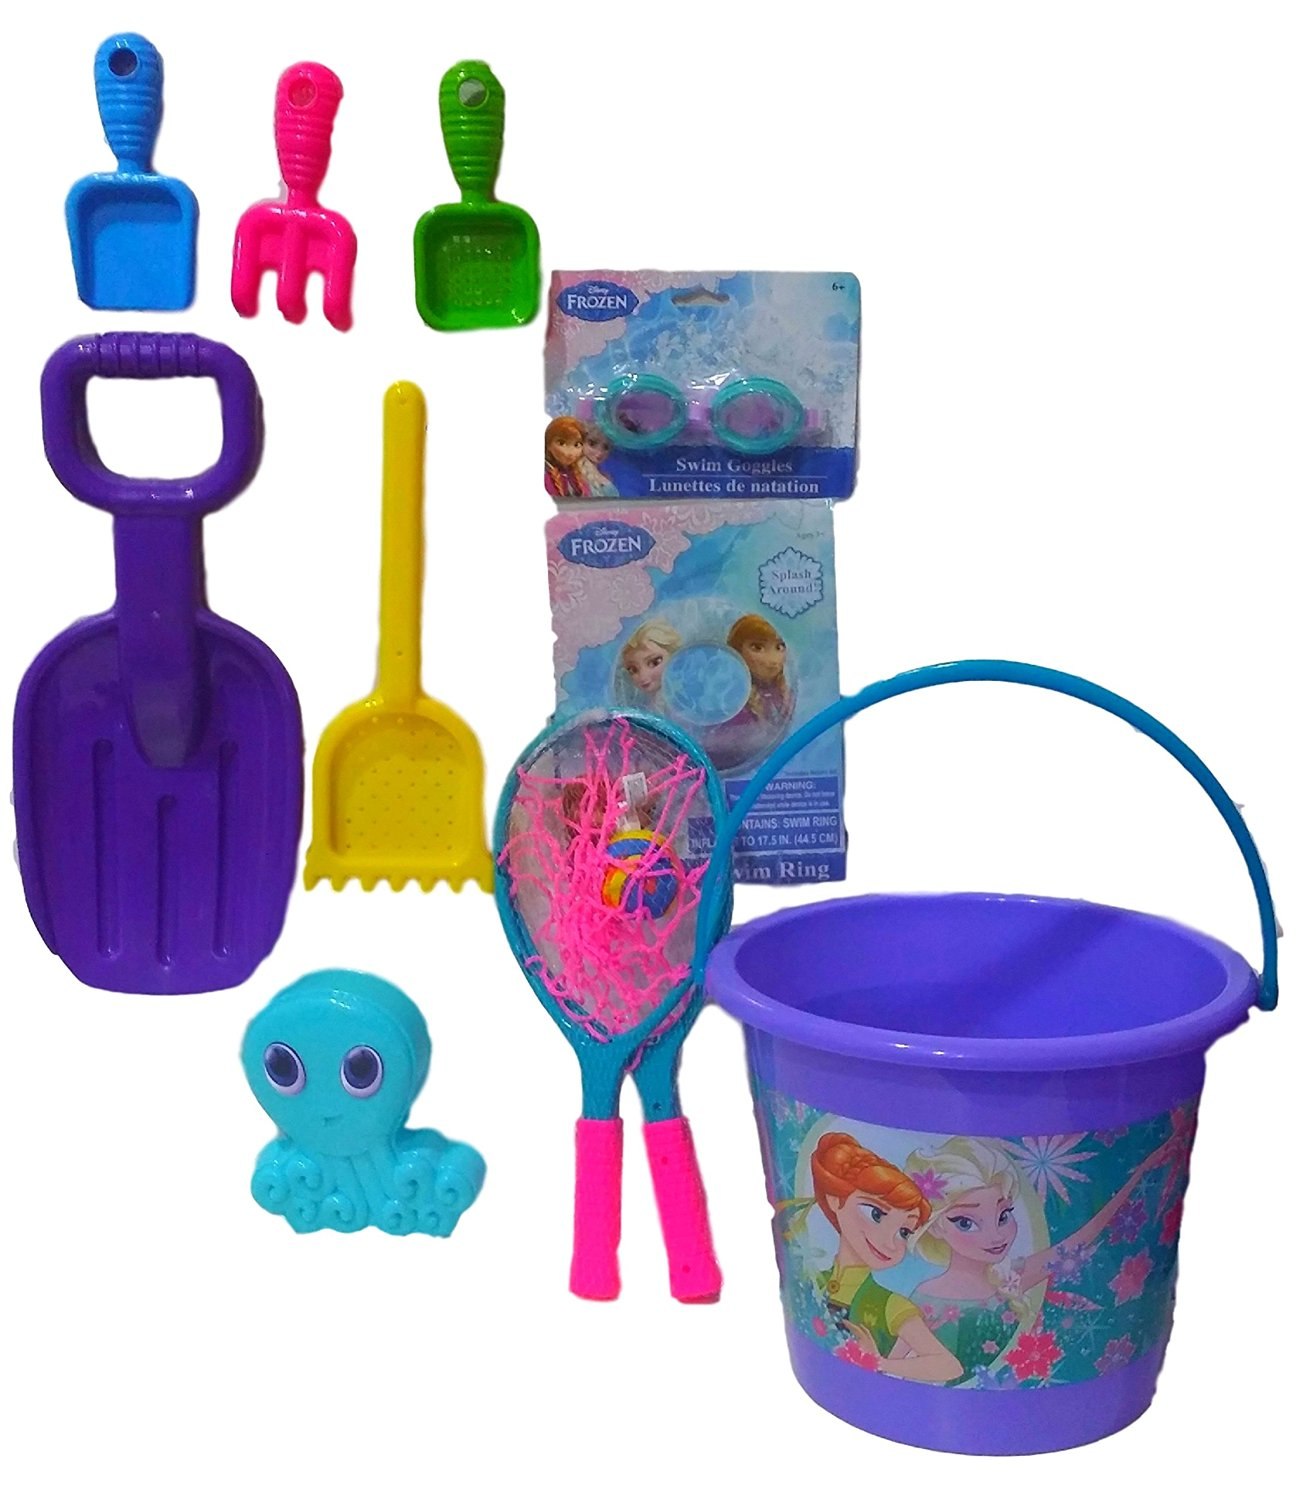 Disney Frozen Anna & Elso Fun in The Sun Sand Bucket with Water Toys, Sandbox Toys, Beach/Pool Toys; Jumbo Sand Toy Set with 13 pieces!